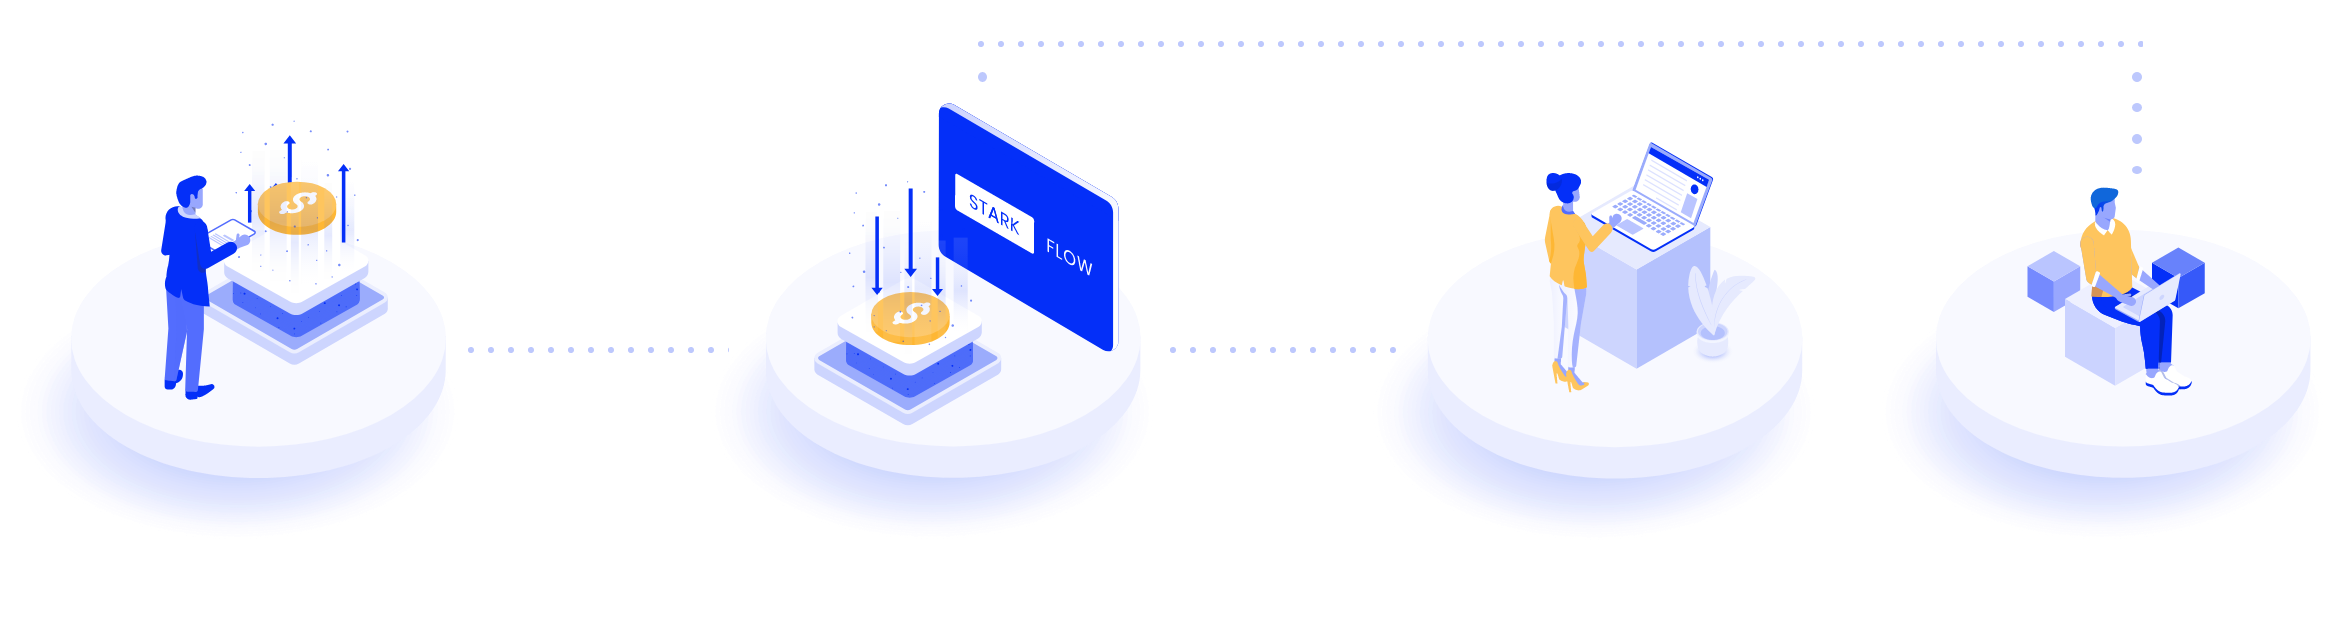 How does Starkflow handle payments?